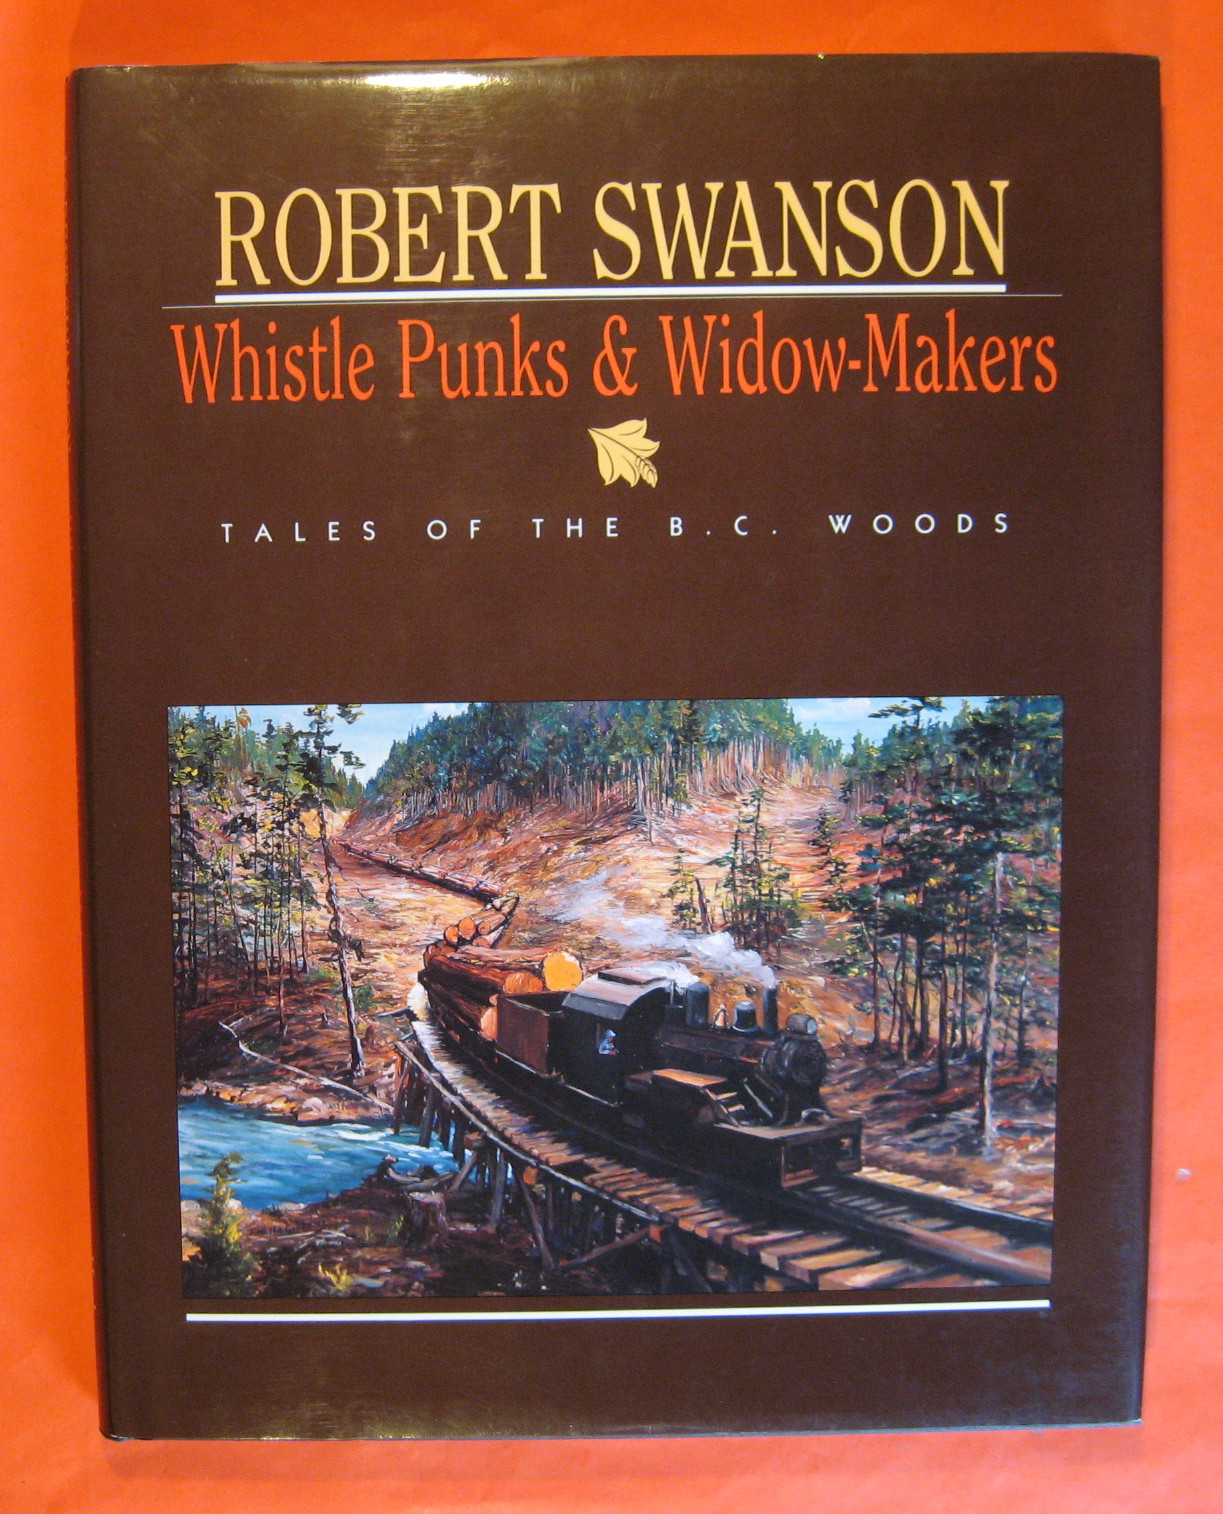 Whistle Punks & Widow-Makers, Swanson, Robert